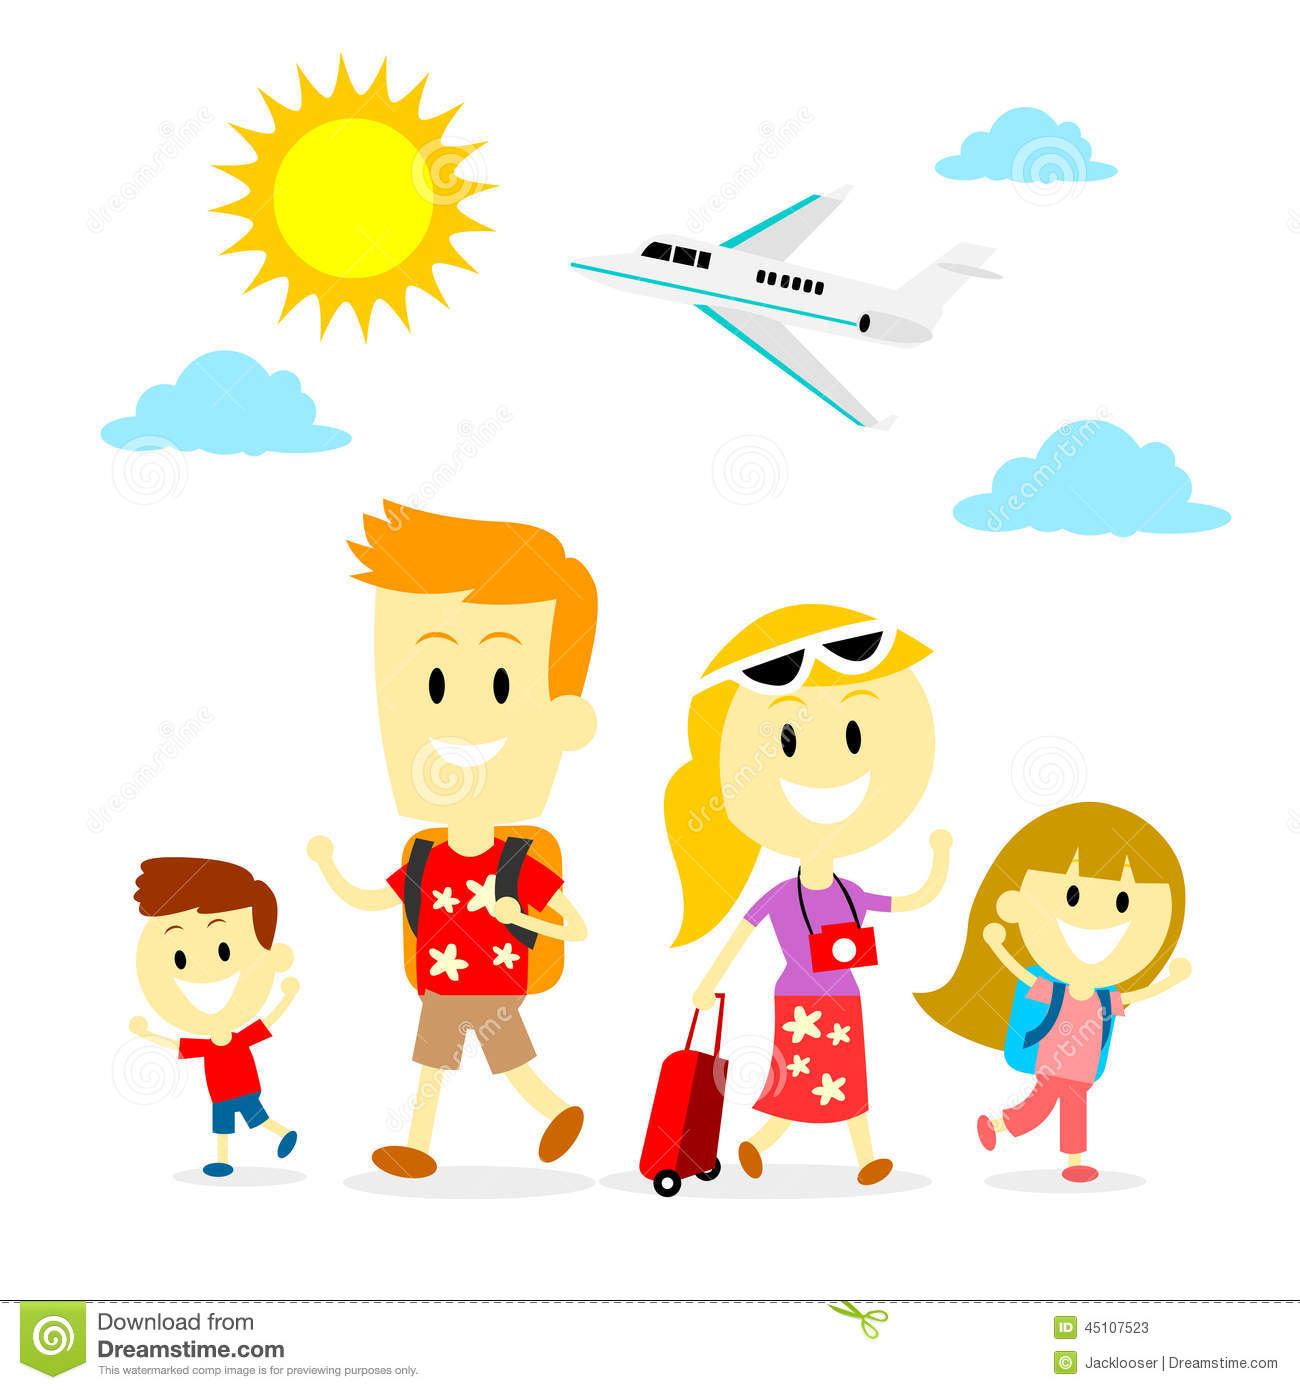 Family Trip Stock Vector Image 45107523